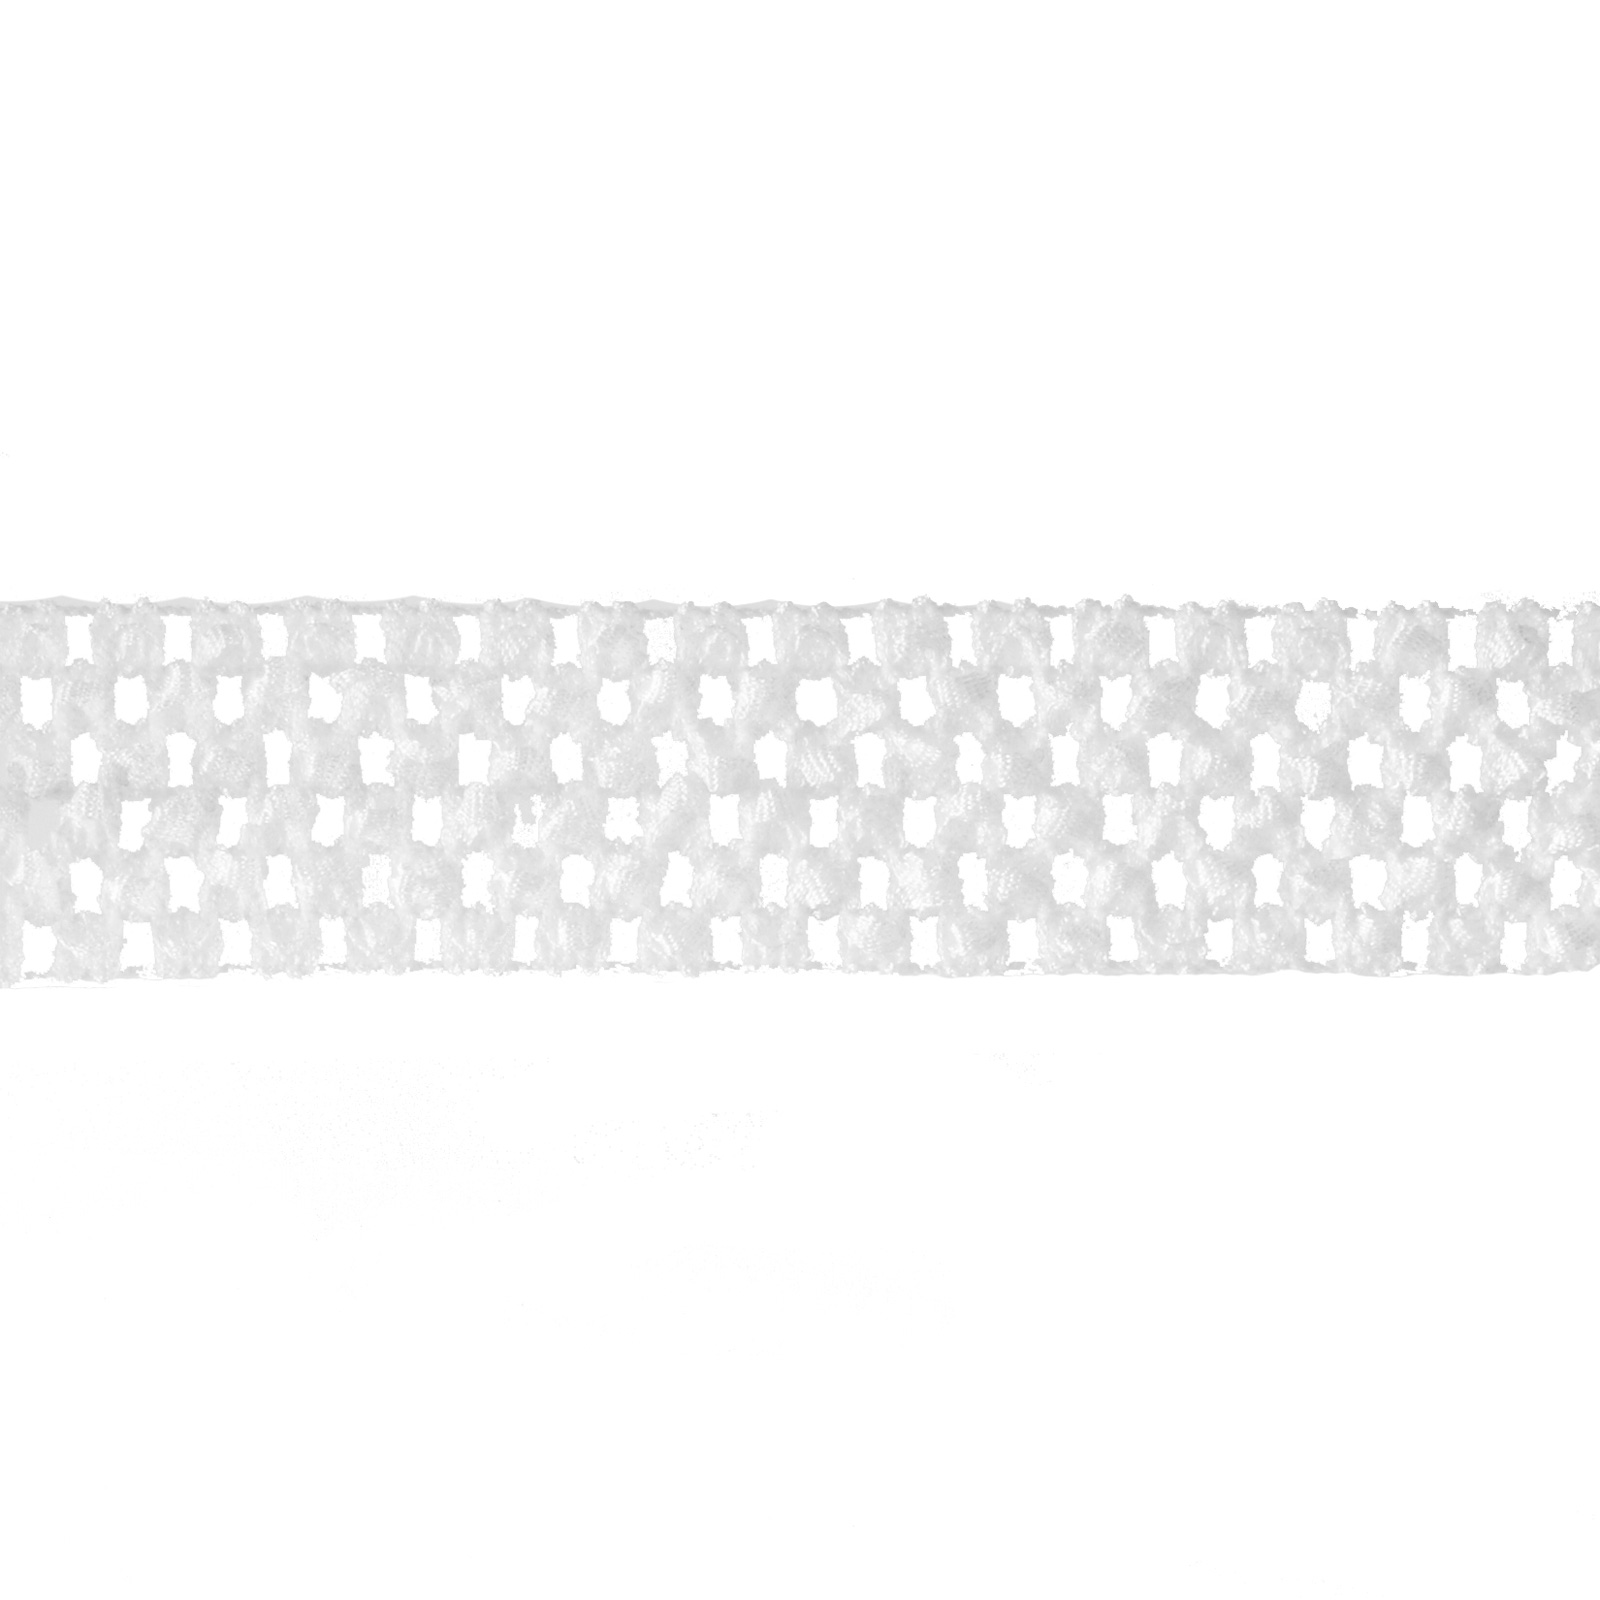 1 3/4'' Crochet Headband Trim White